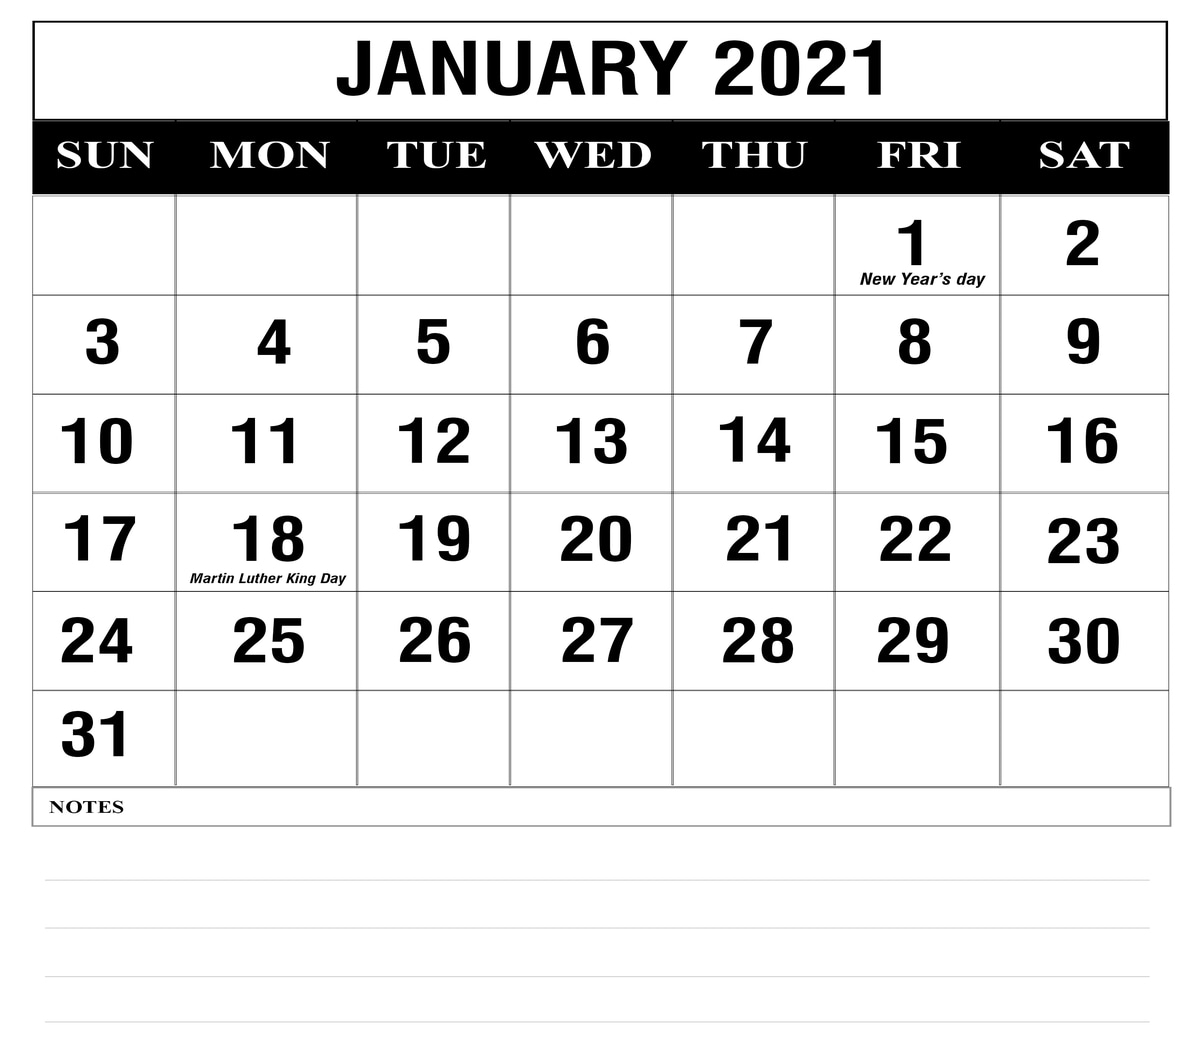 Free January 2021 Printable Calendar Template In Pdf, Excel With Julian Vs Gregorian Calendar 2021